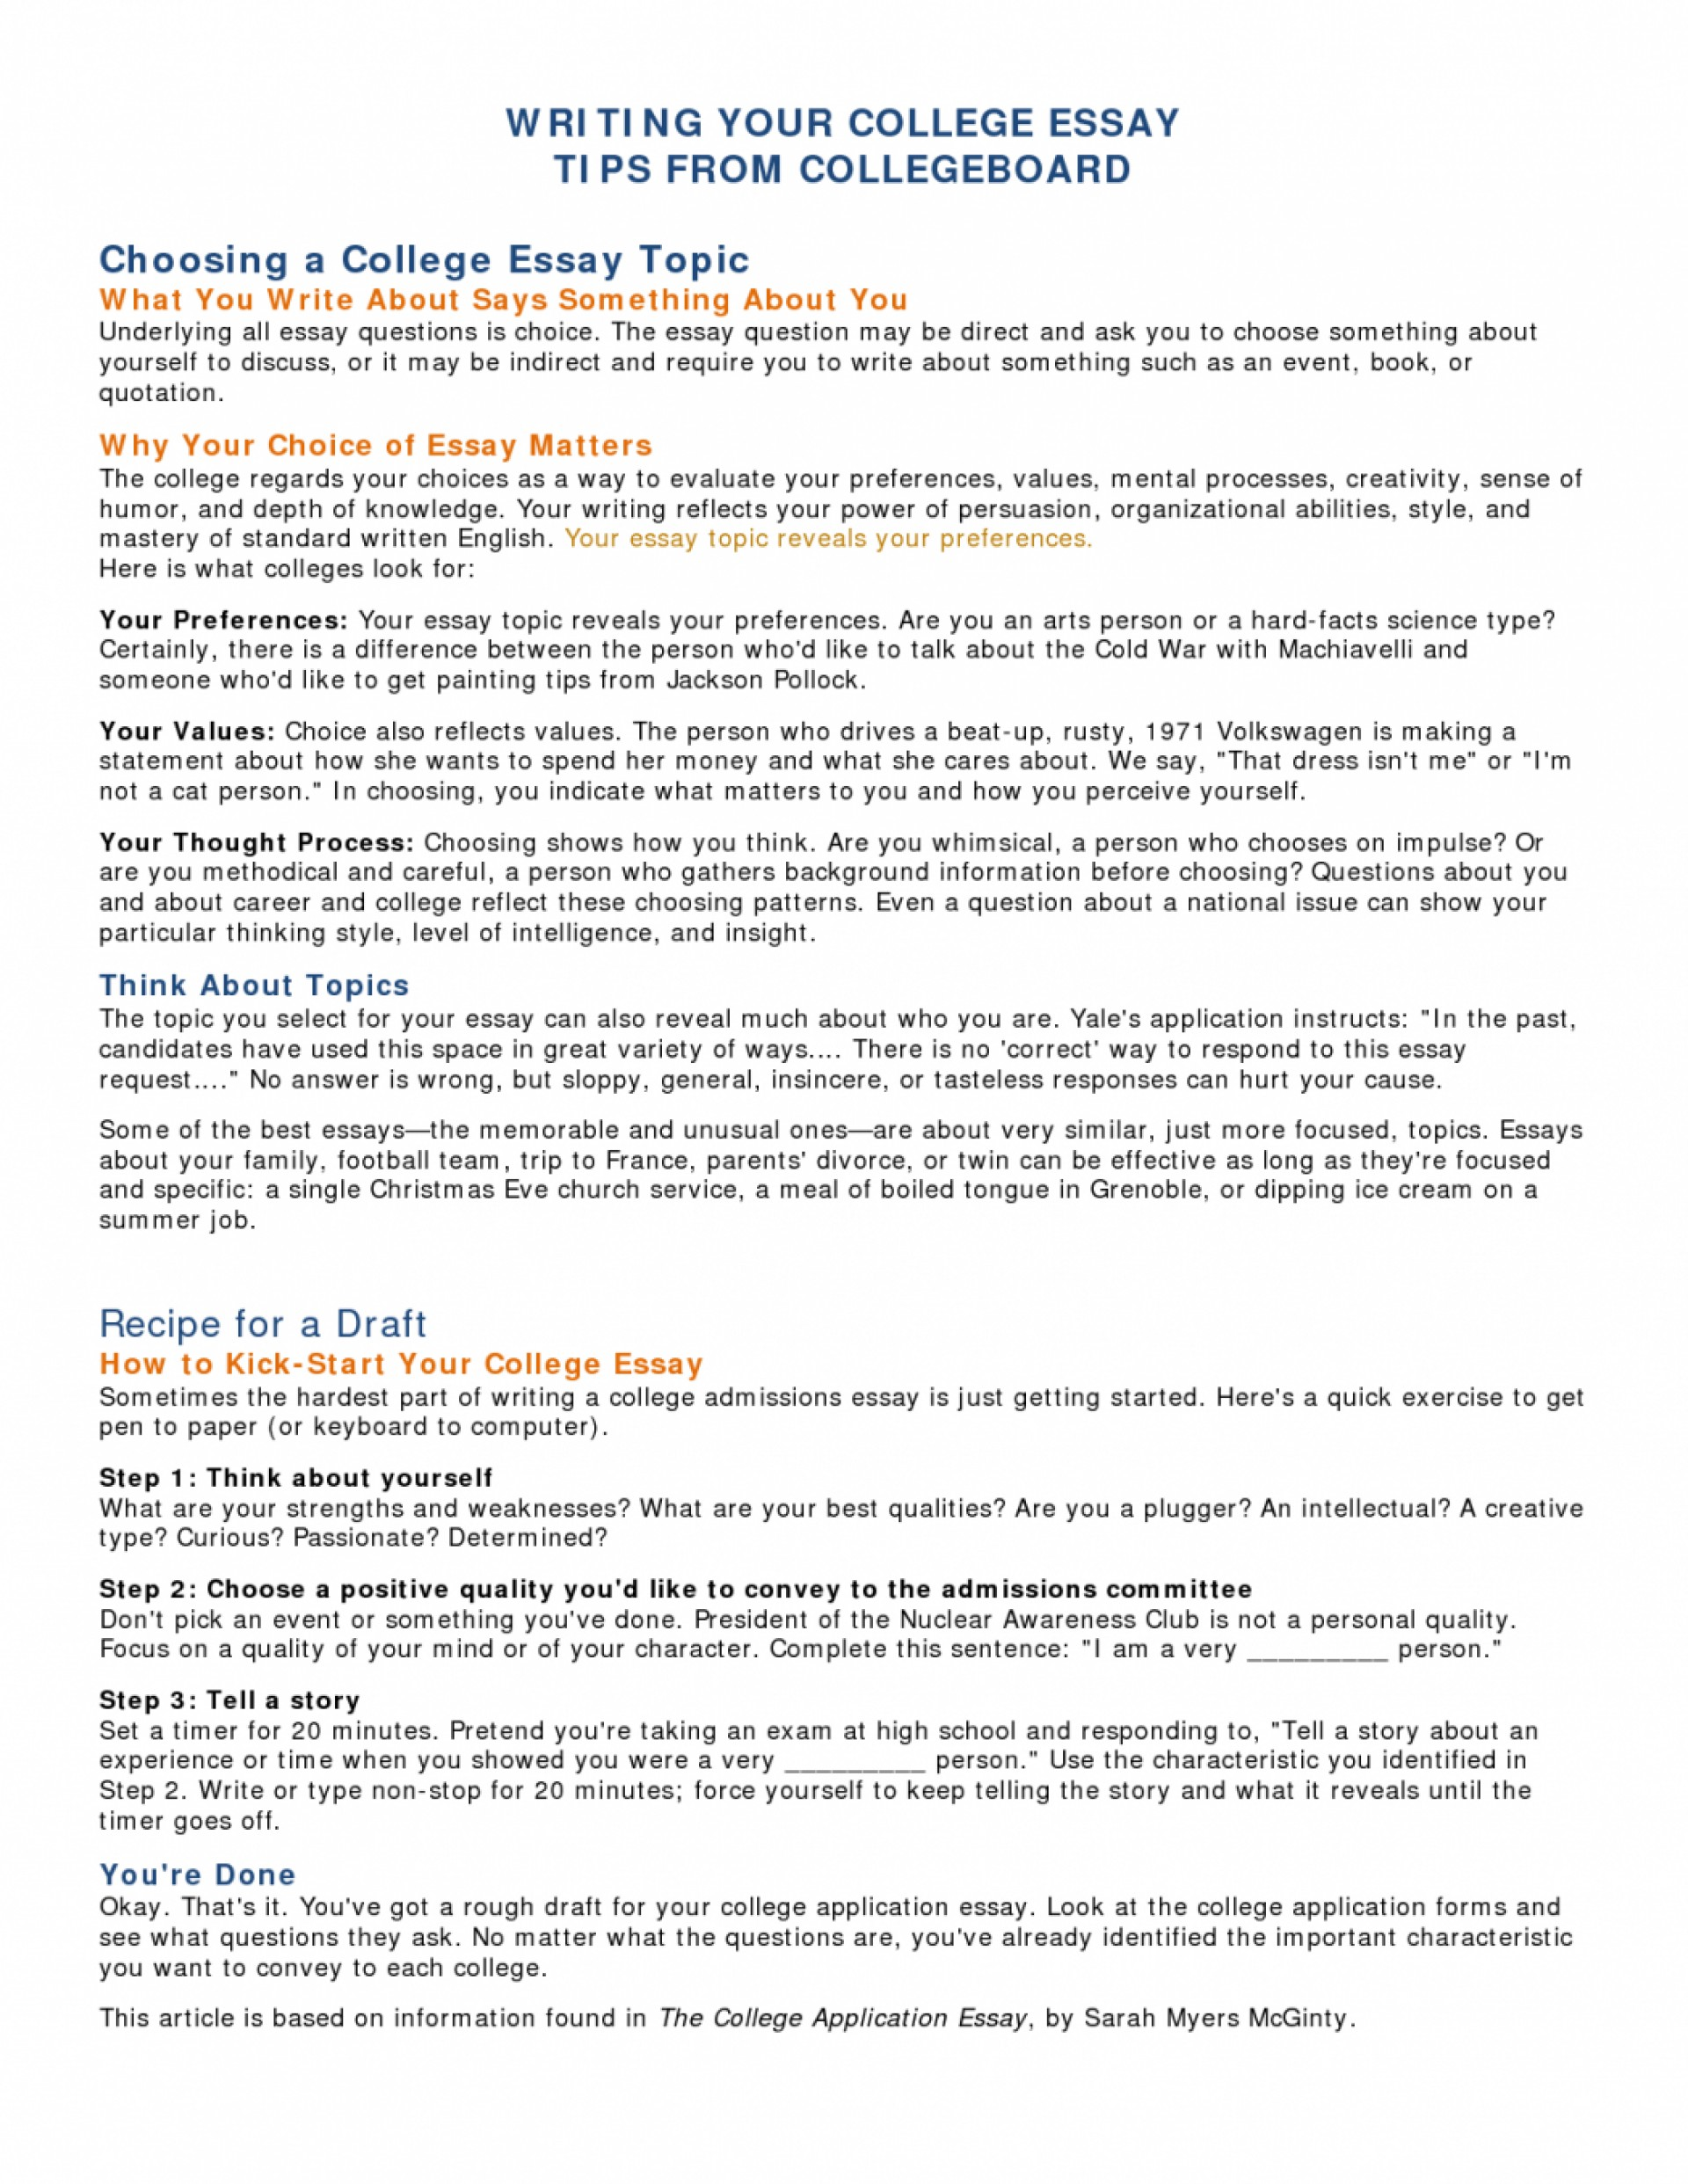 027 University Application Essayat Vatoz Atozdevelopment Co College Heading Example Best Ideas Of Template Beauti App Sample Mla Common Guidelines Structure 1048x1356 Admission Awesome Essay Format Examples 1920